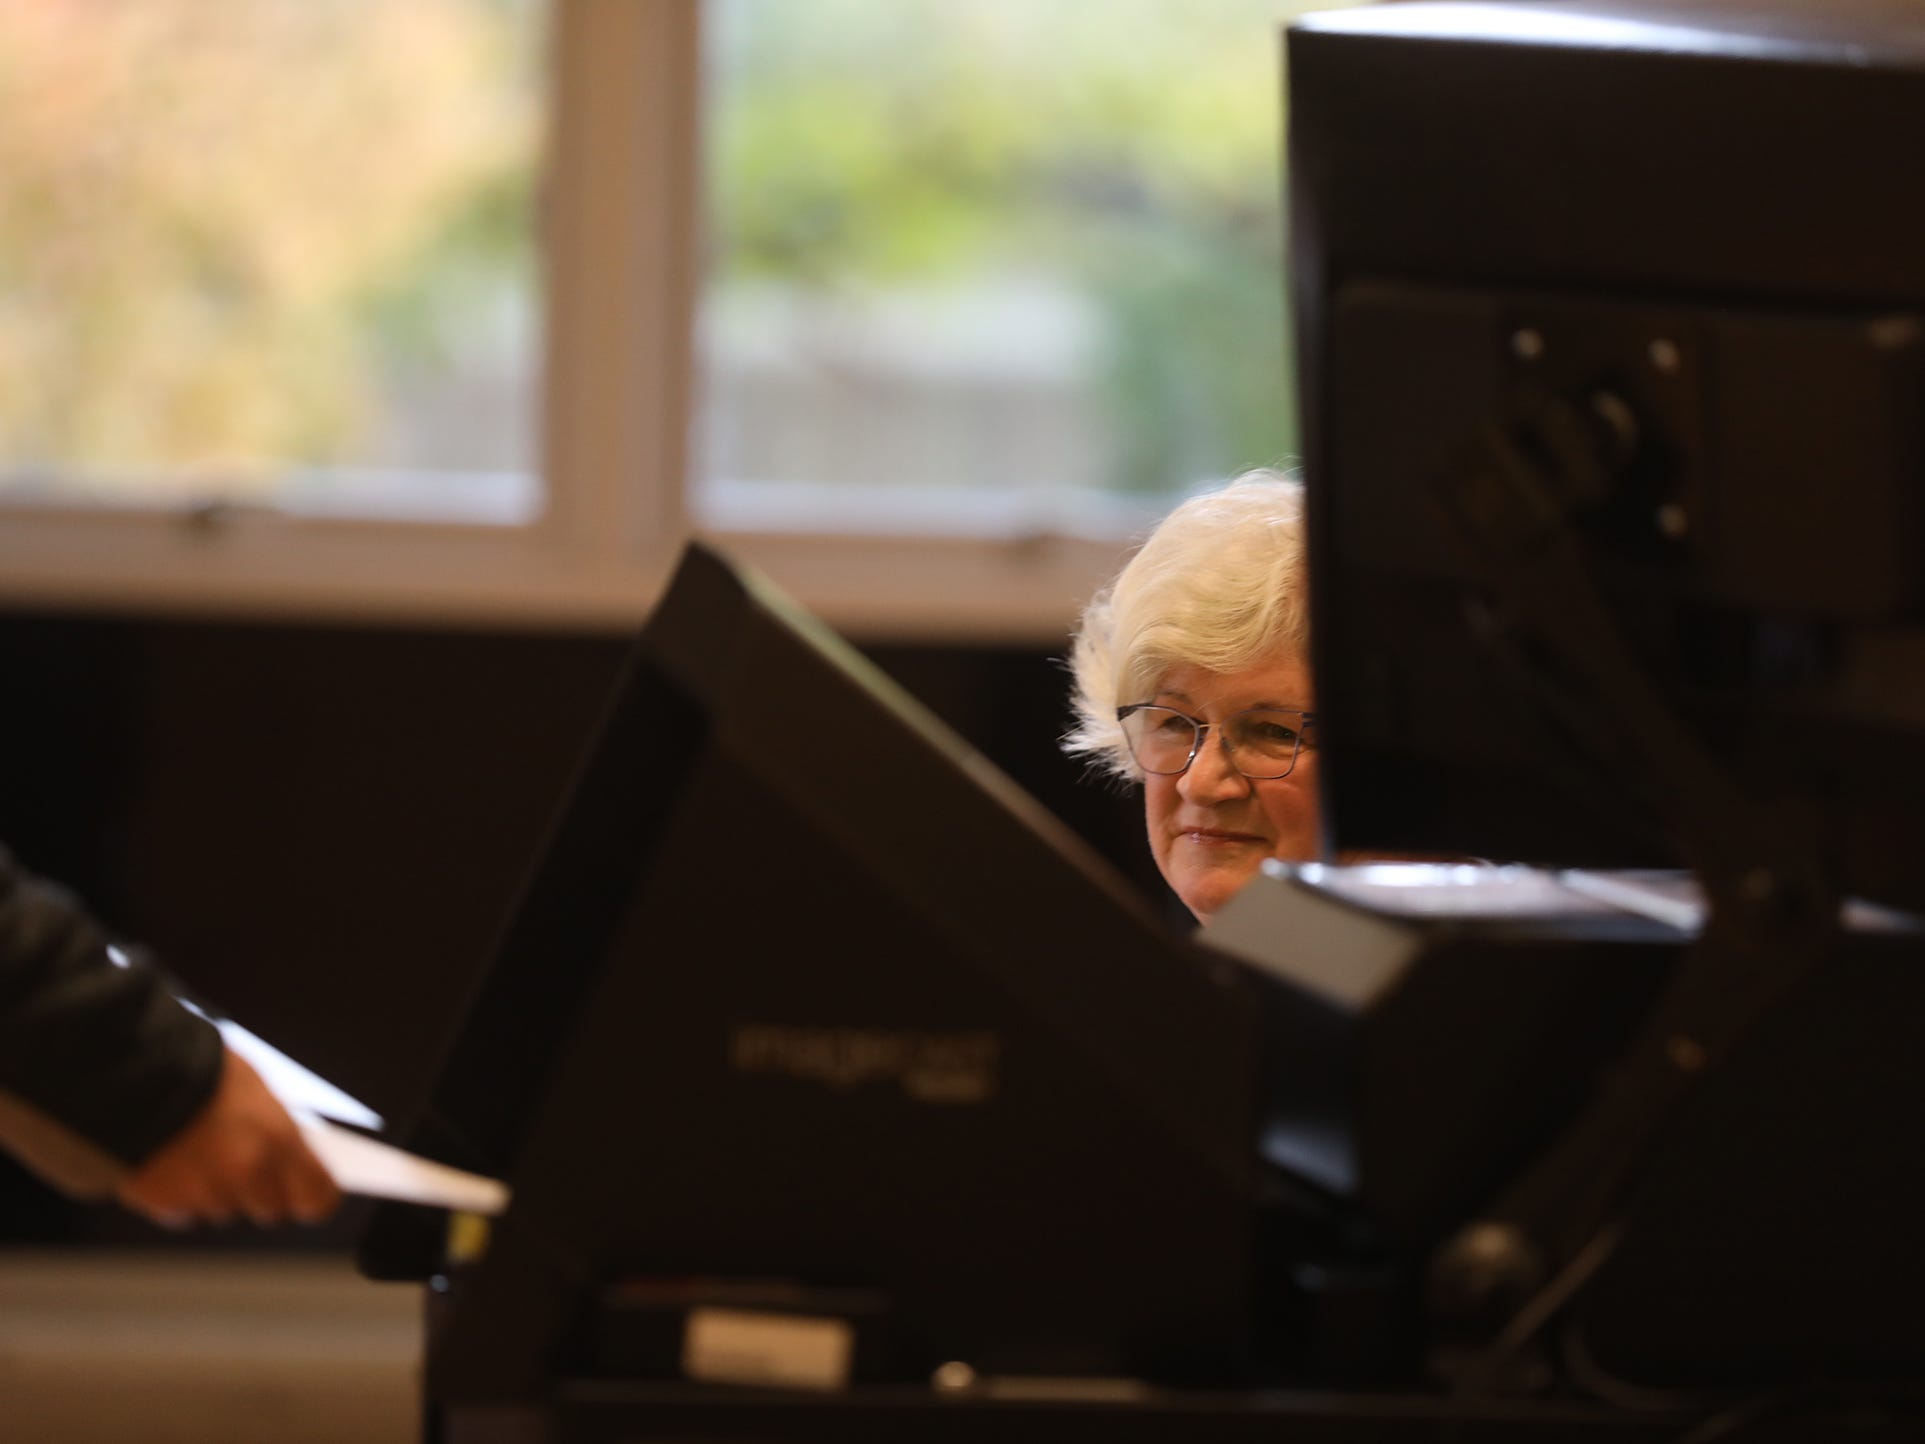 Karen Williams, an elecction inspector at Aldersgate united Methodist Church in Greece, watches as a ballot gets put into the voting machine.